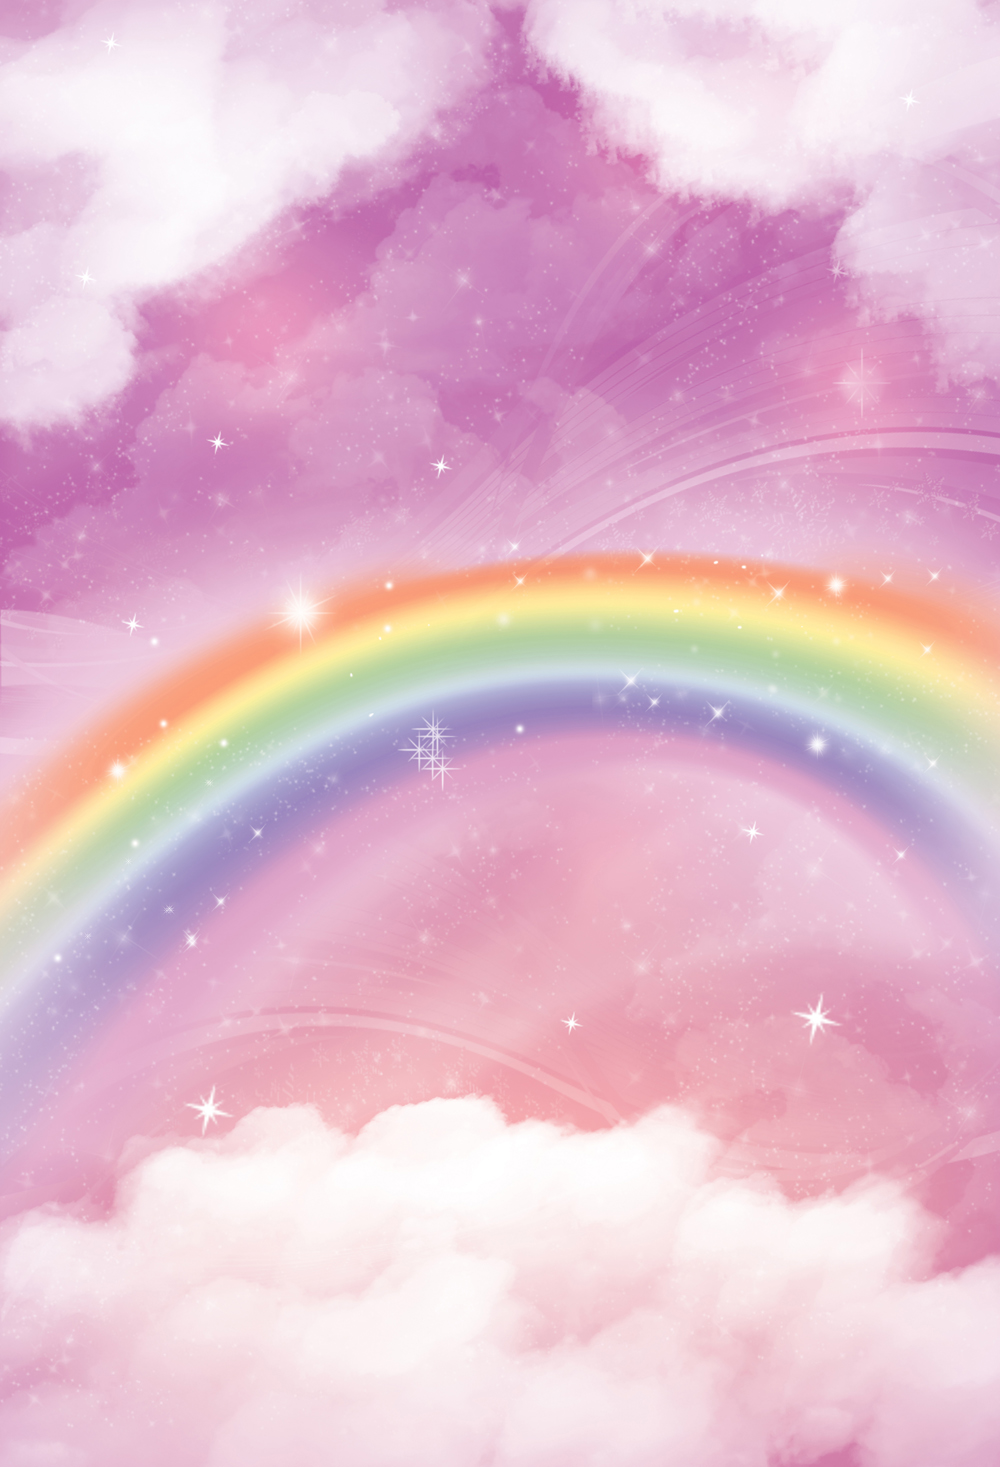 HUAYI 5x7ft Vertical Rainbow Backdrop Art Fabric